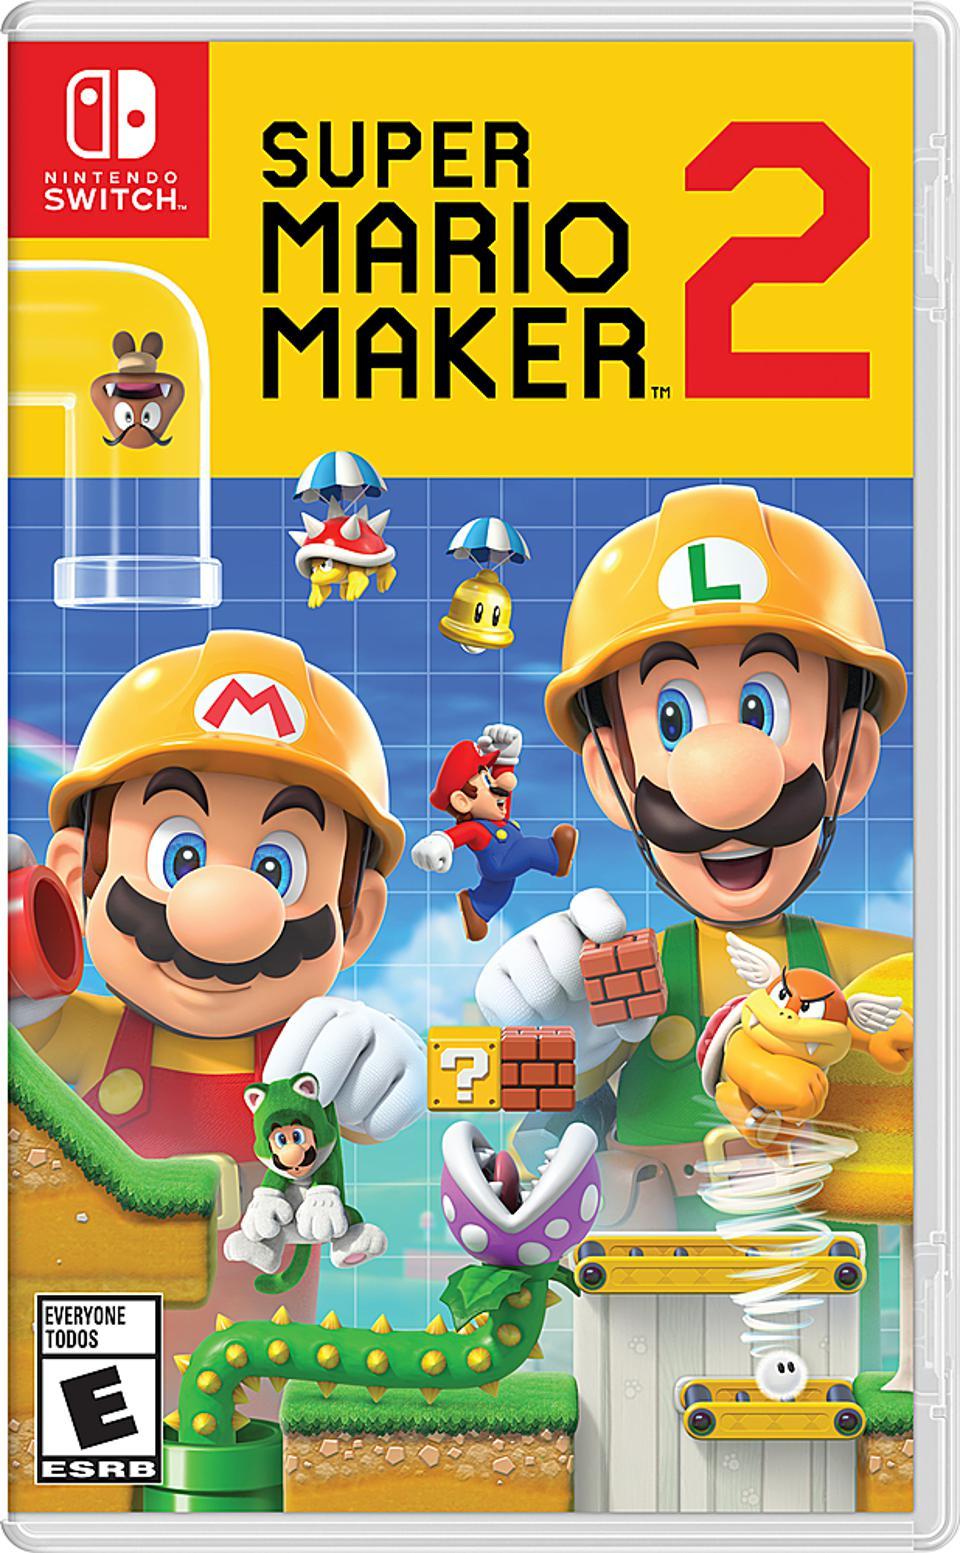 Super Mario Maker 2 for Nintendo Switch retail packaging.